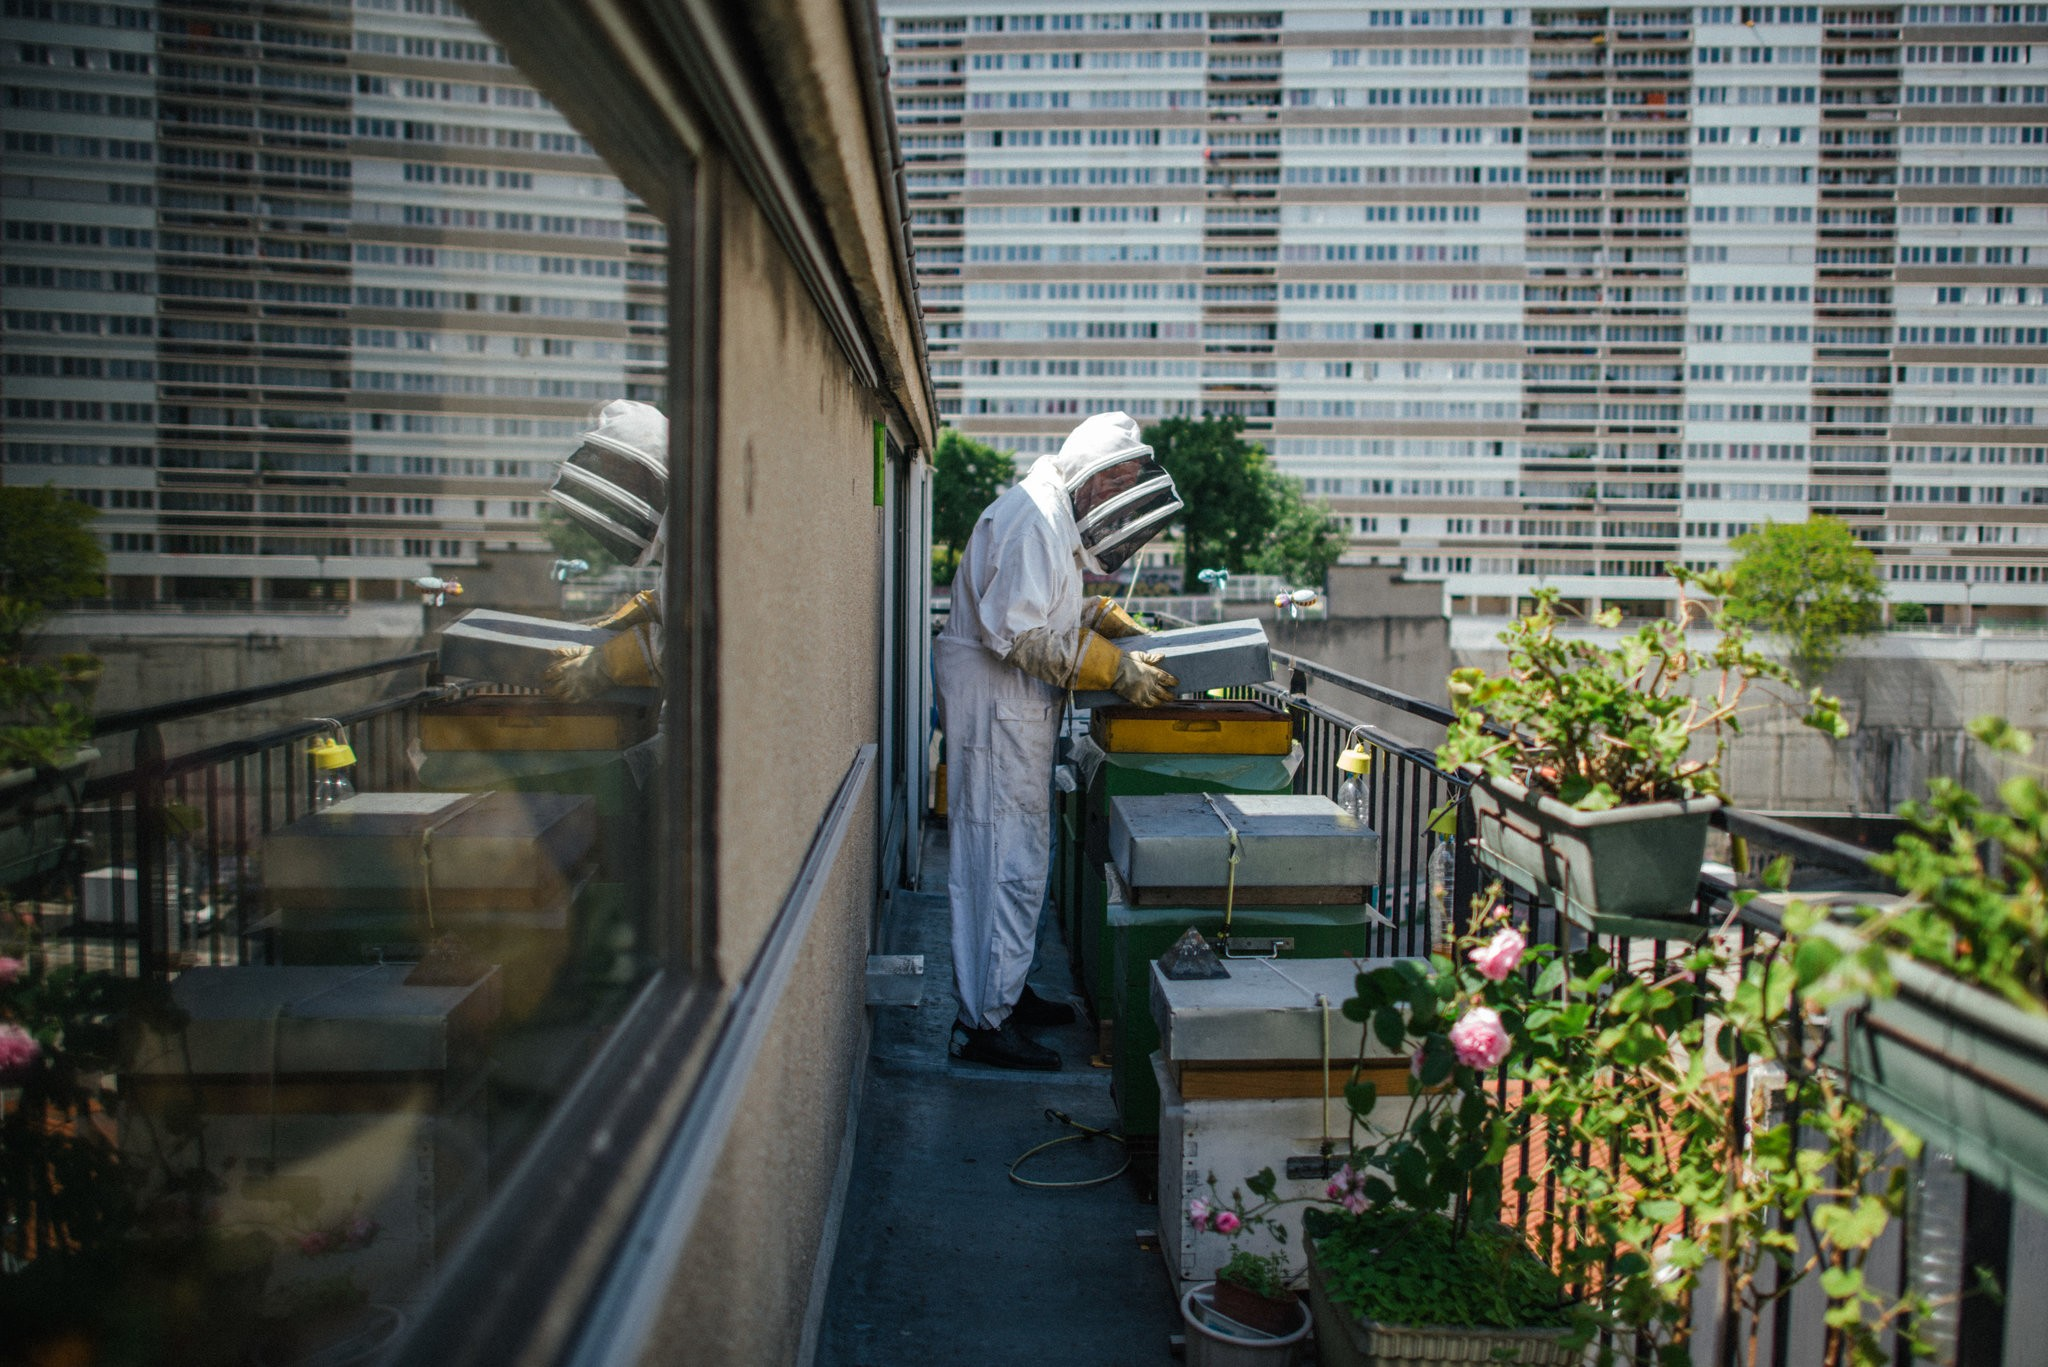 Armand Malvezin with the hives he tends on the balcony of his apartment in the 13th Arrondissement.